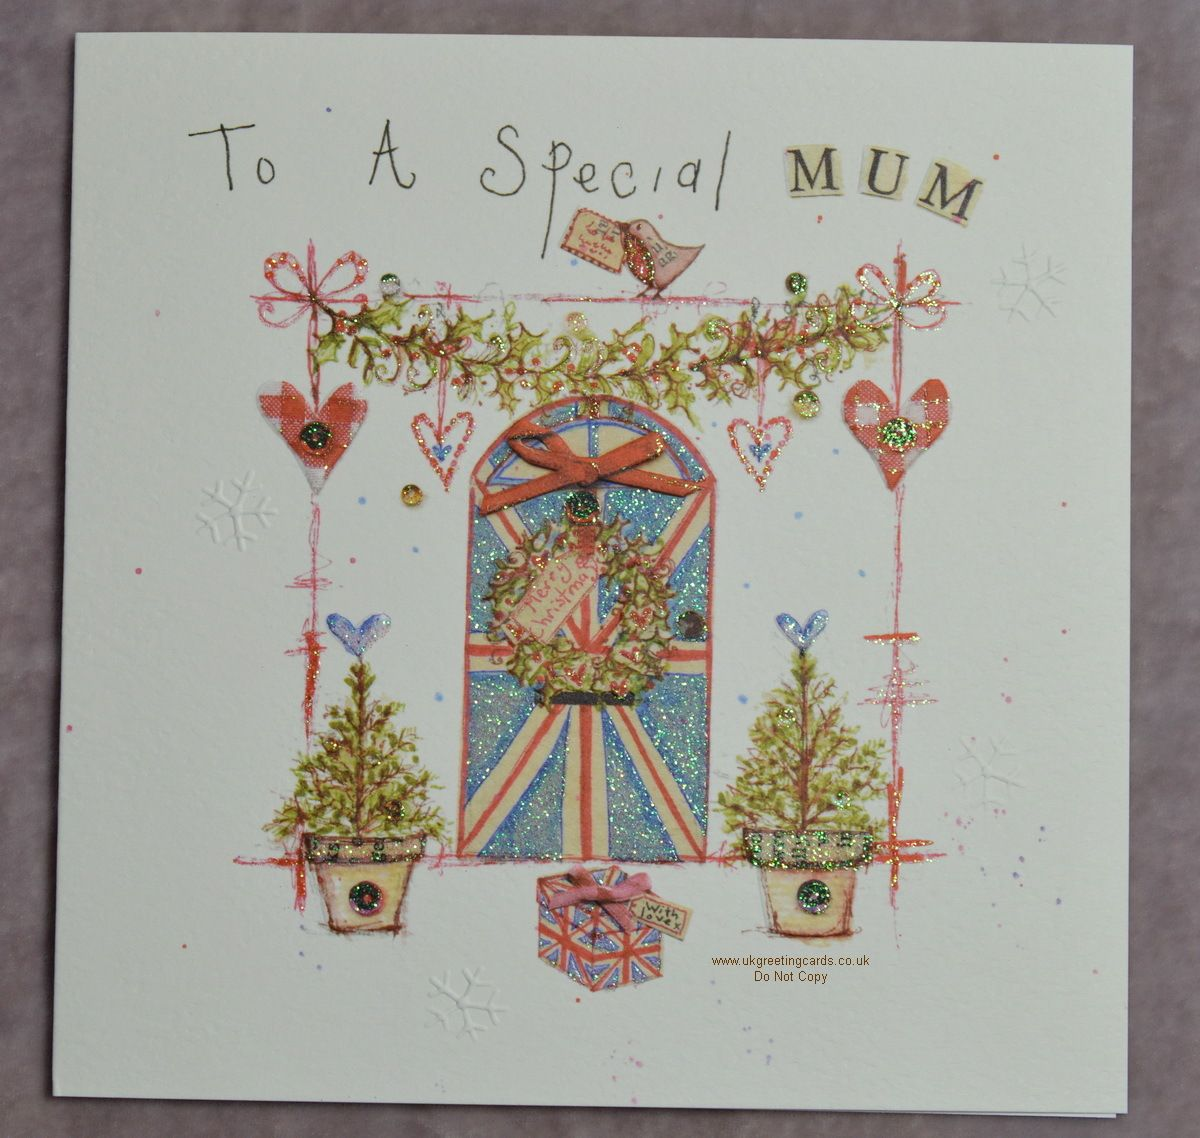 Uk greeting cards online to a special mum merry christmas 225 uk greeting cards online to a special mum merry christmas 225 http kristyandbryce Choice Image